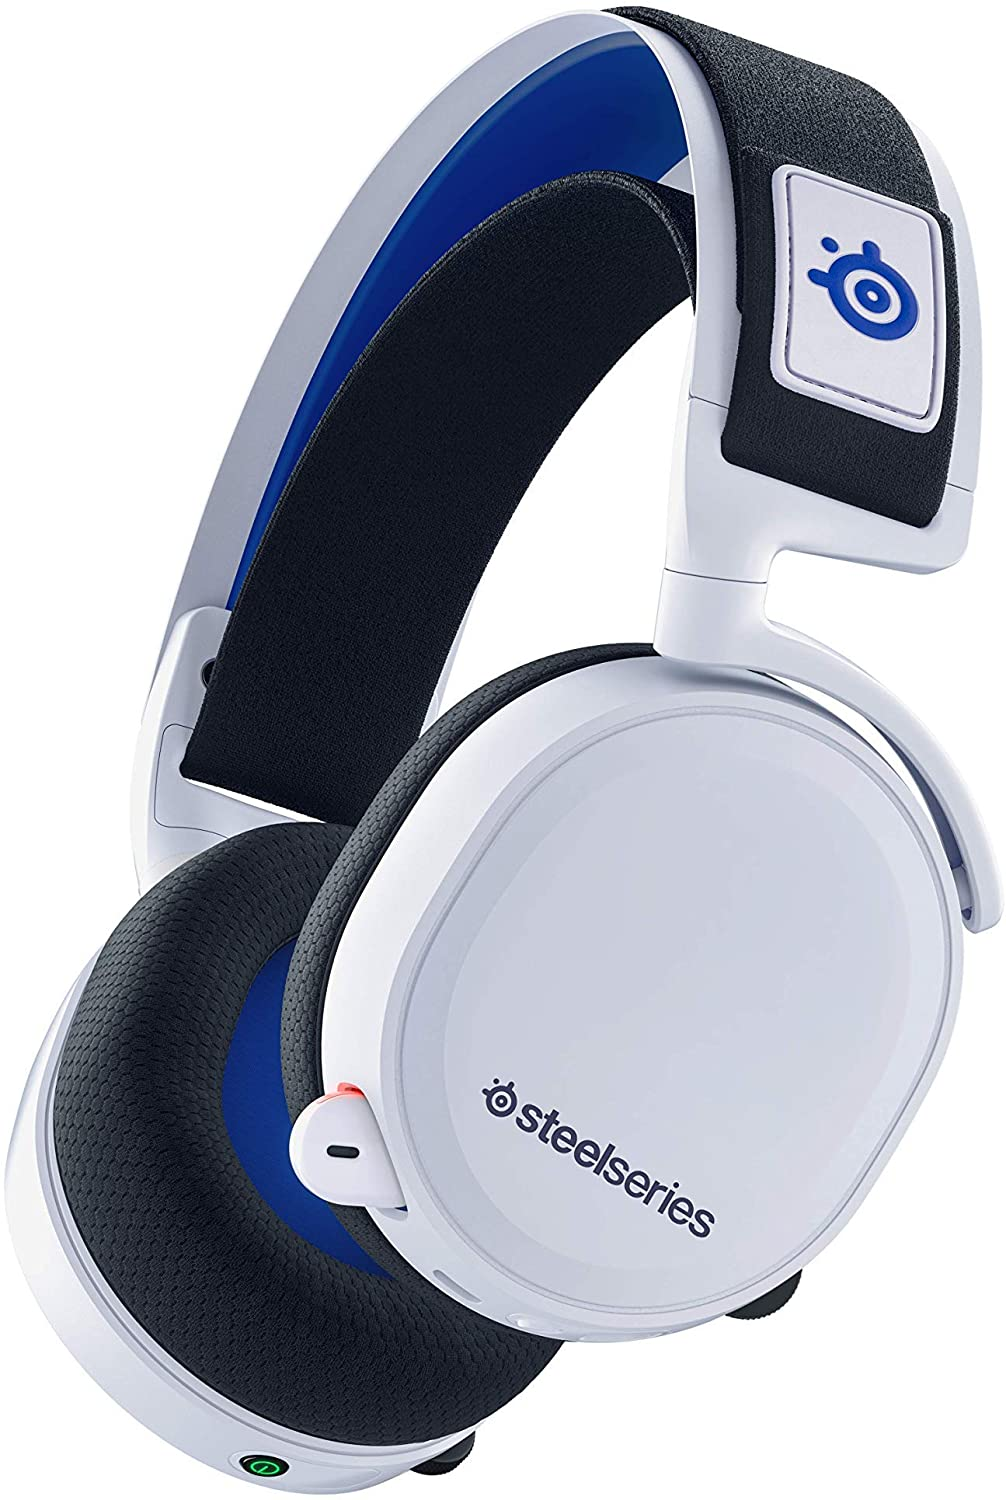 SteelSeries Arctis 7P Wireless - GHz 2.4 Gamin All Award-winning store items in the store Lossless